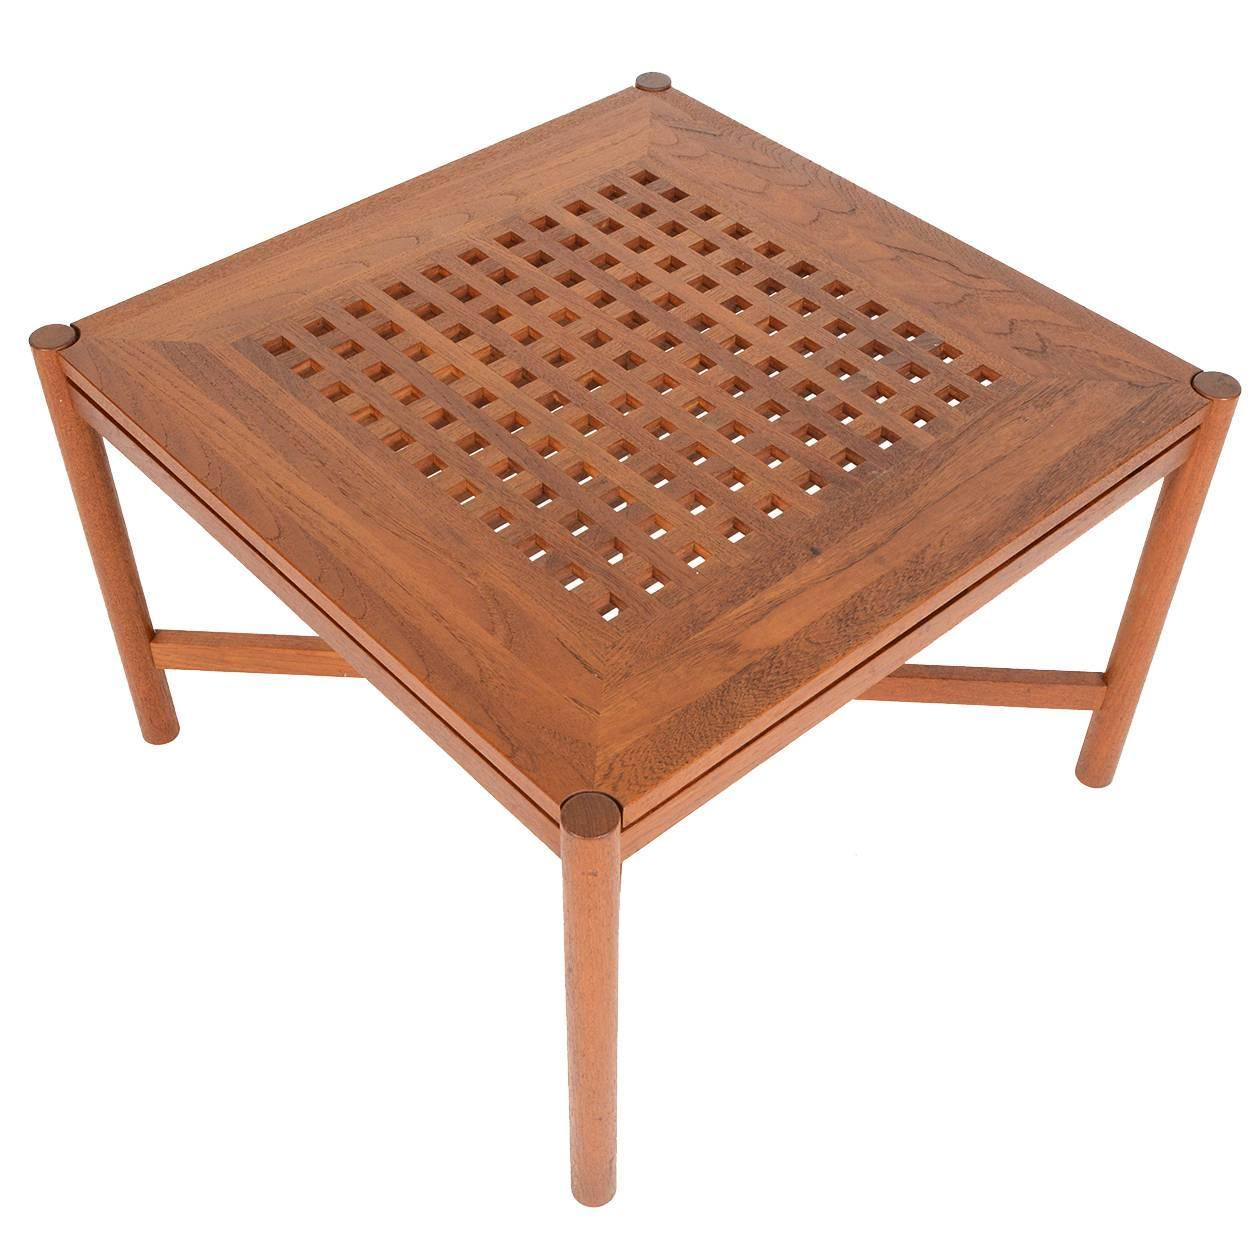 Teak Oil Coffee Table: Danish Modern Square Teak Coffee Table By Trip Trap For